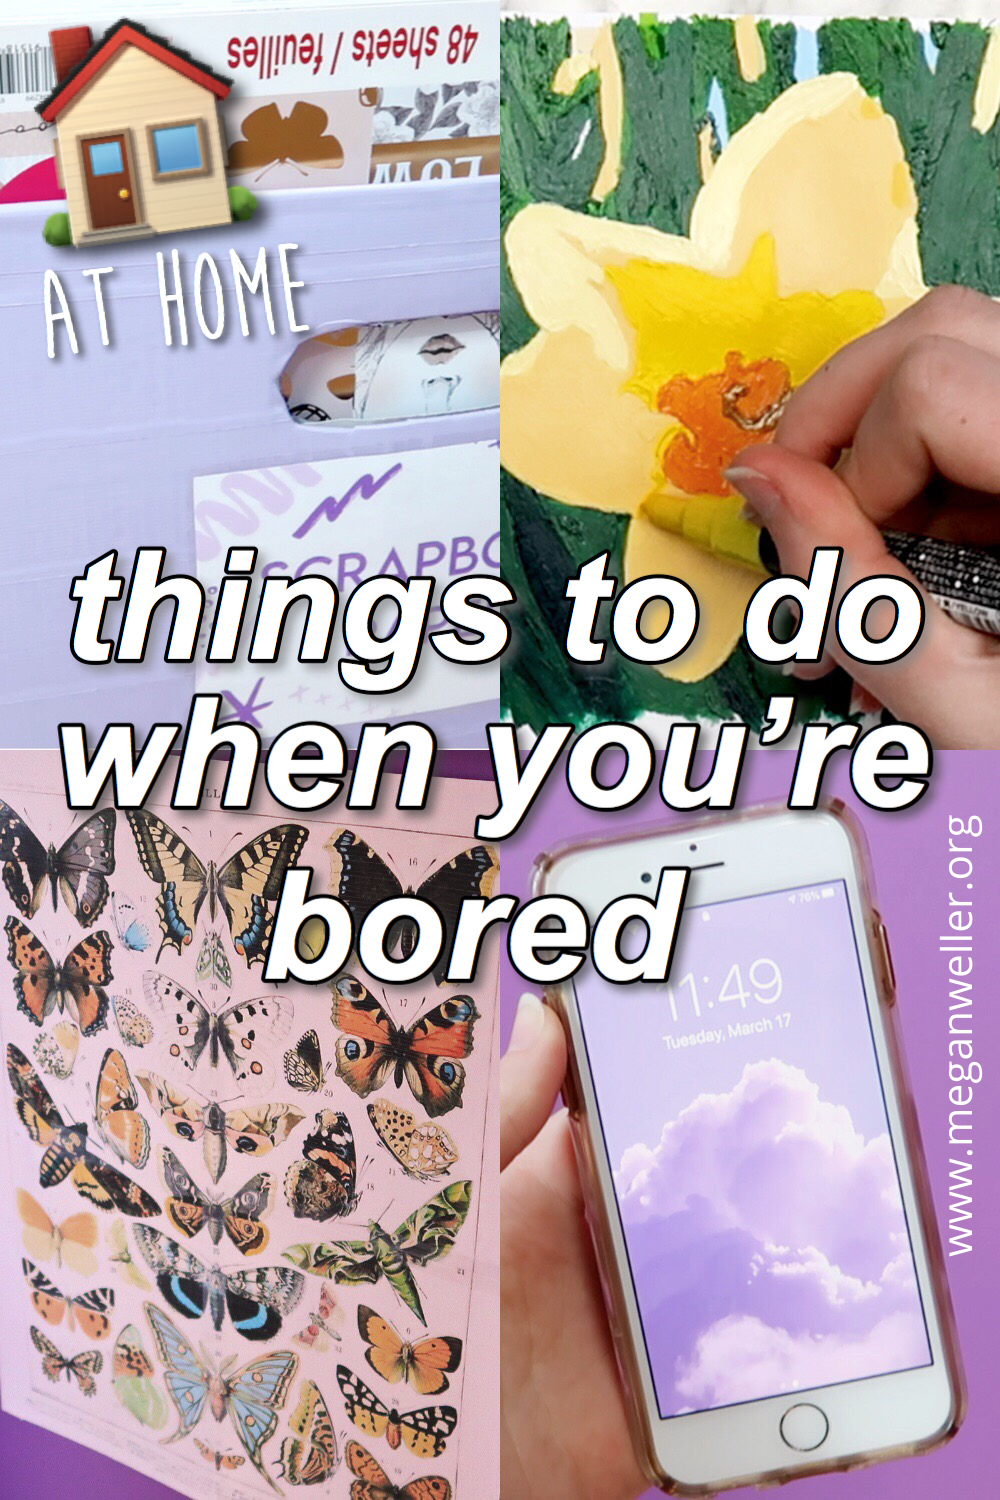 Things to do when you're bored Pinterest graphic